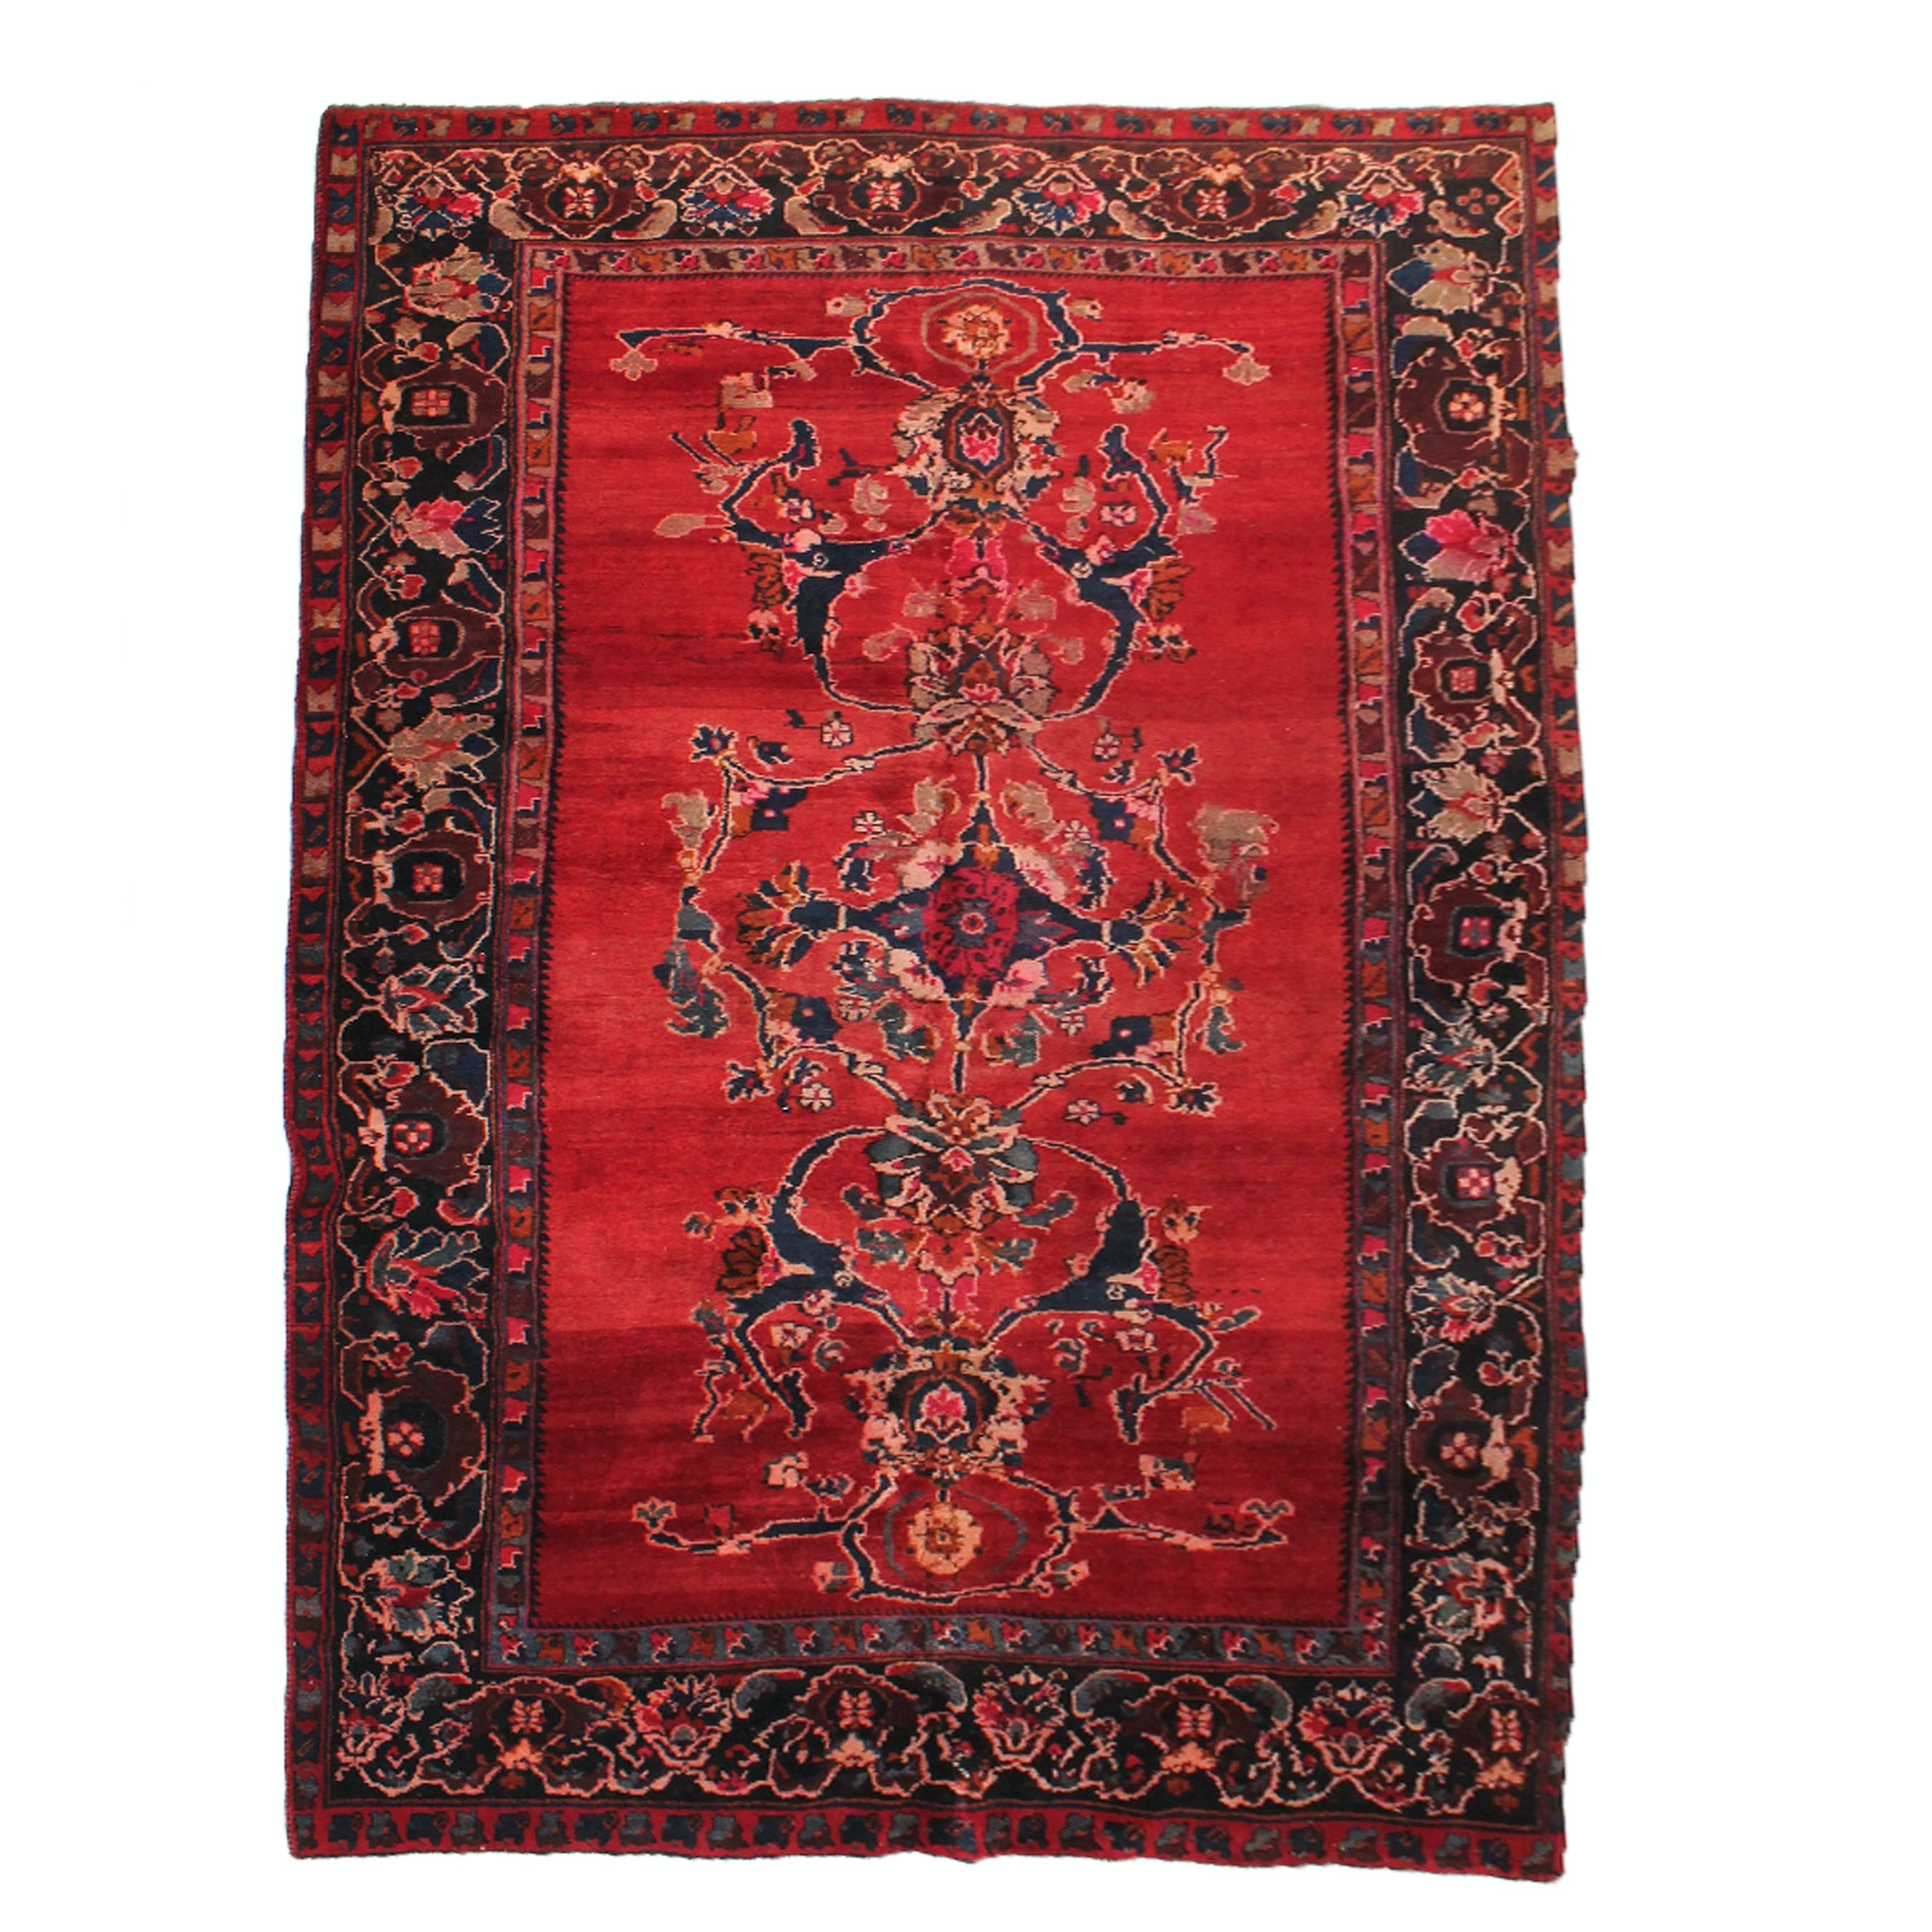 6' x 11' Vintage Hand-Knotted Persian Mahal Sarouk Area Rug